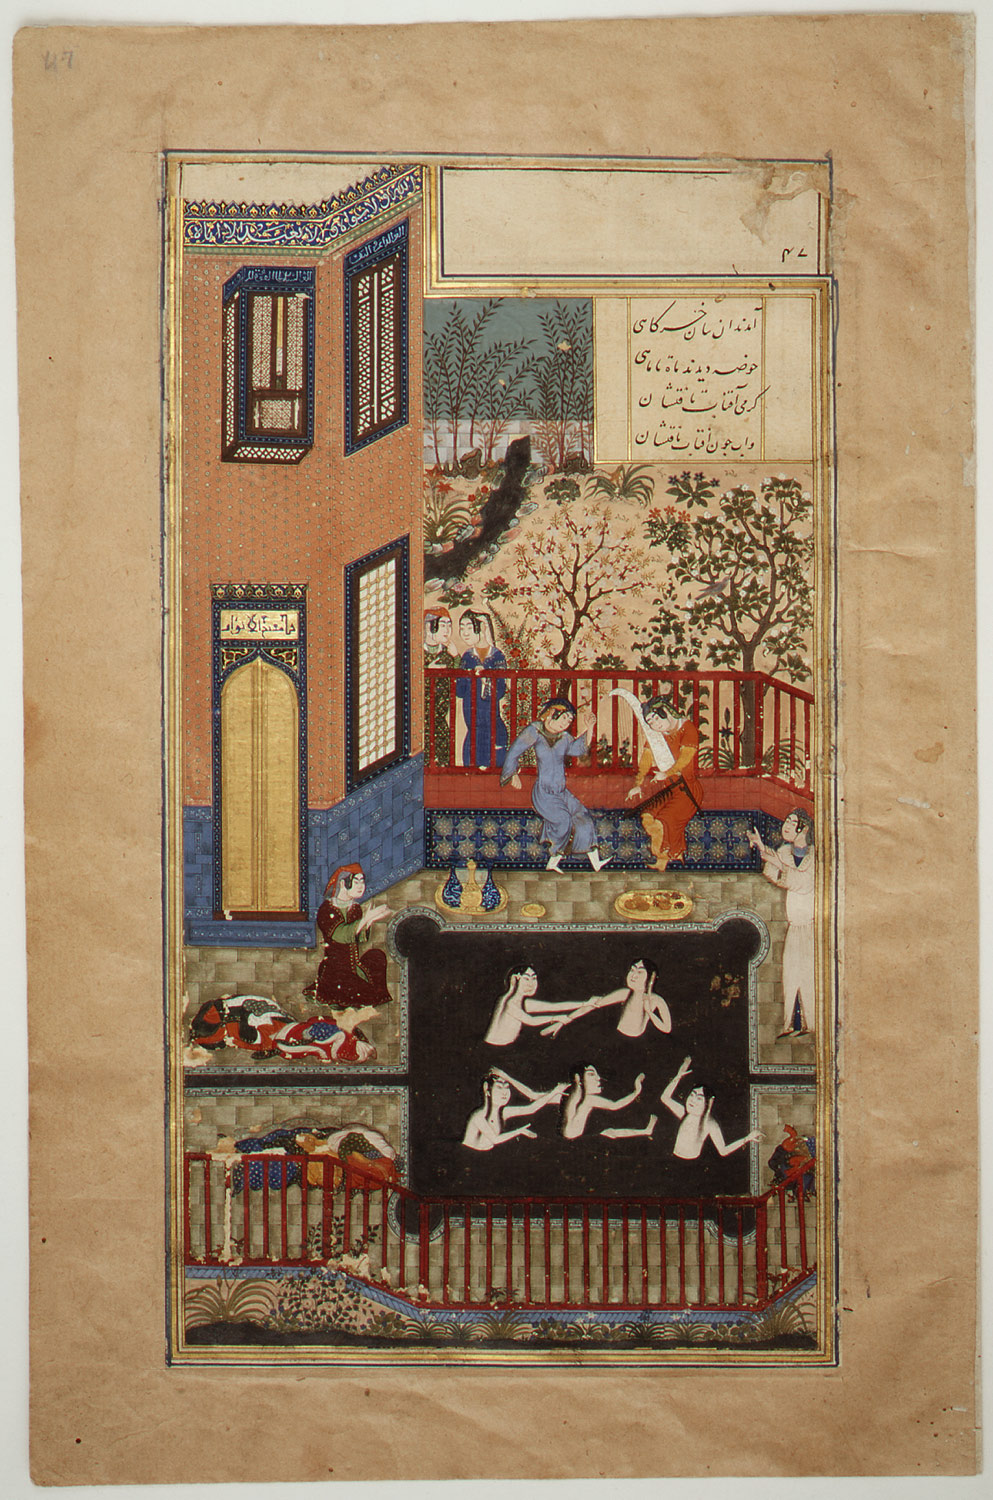 The Eavesdropper, Folio 47r from a Haft Paikar (Seven Portraits) of the Khamsa (Quintet) of Nizami